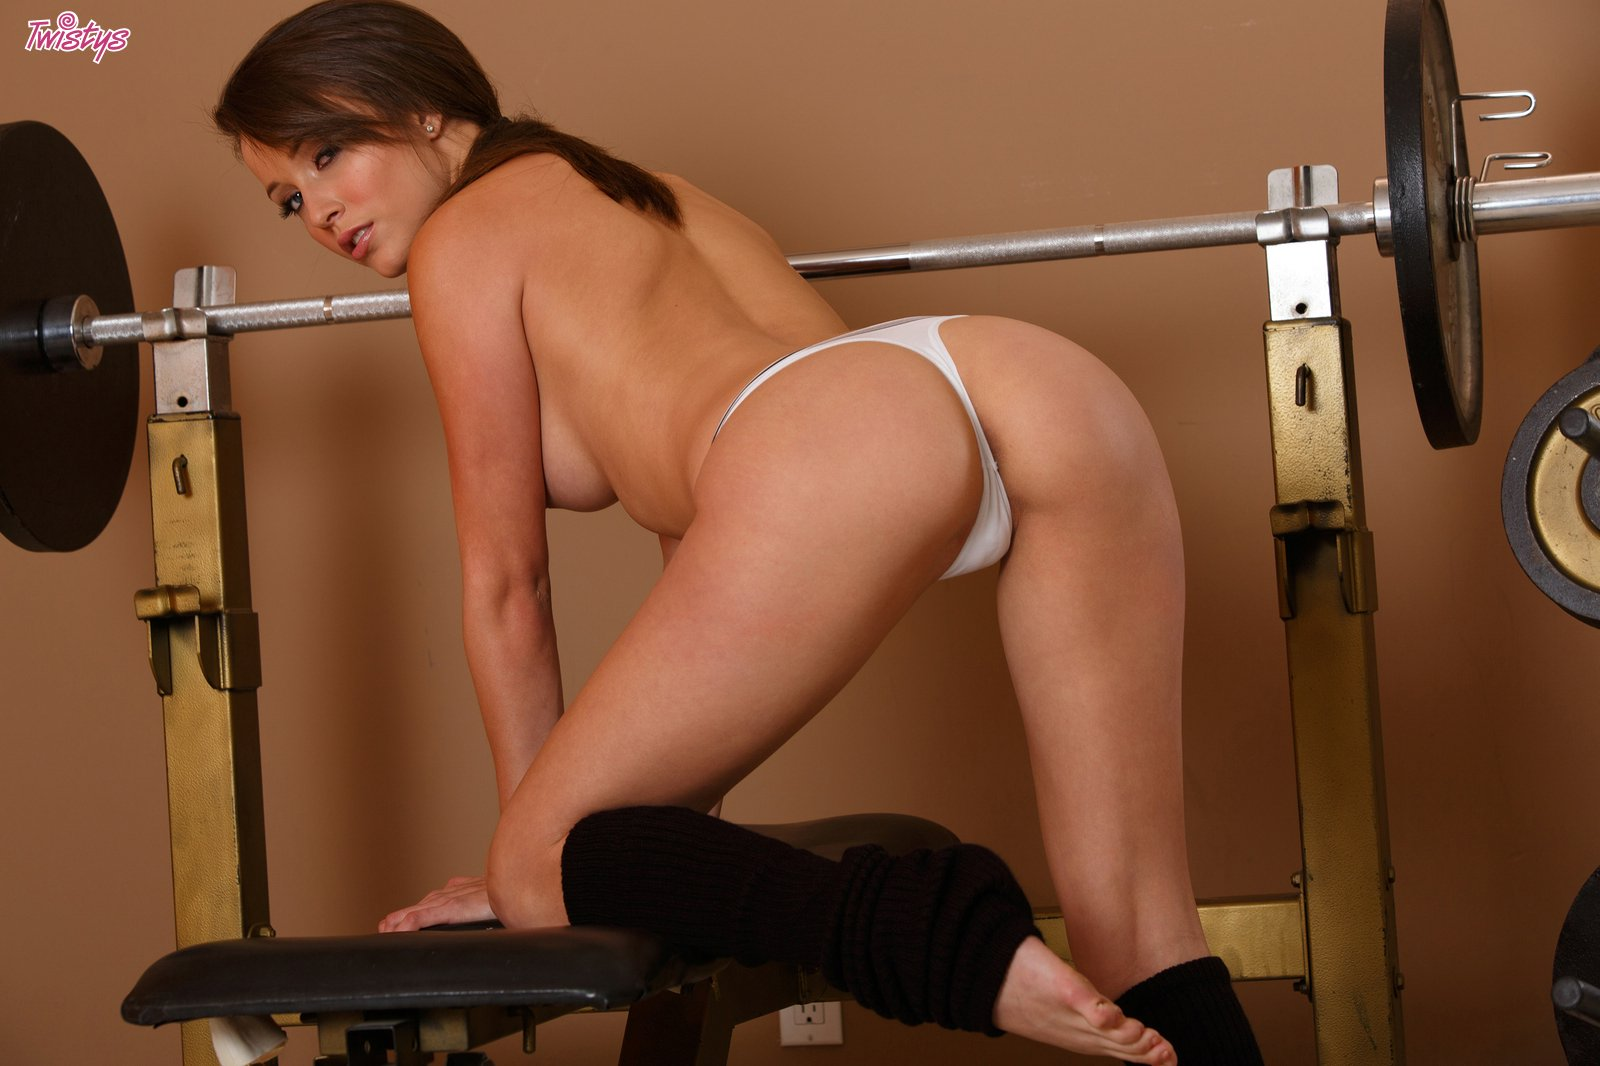 With malena morgan twistys gym join